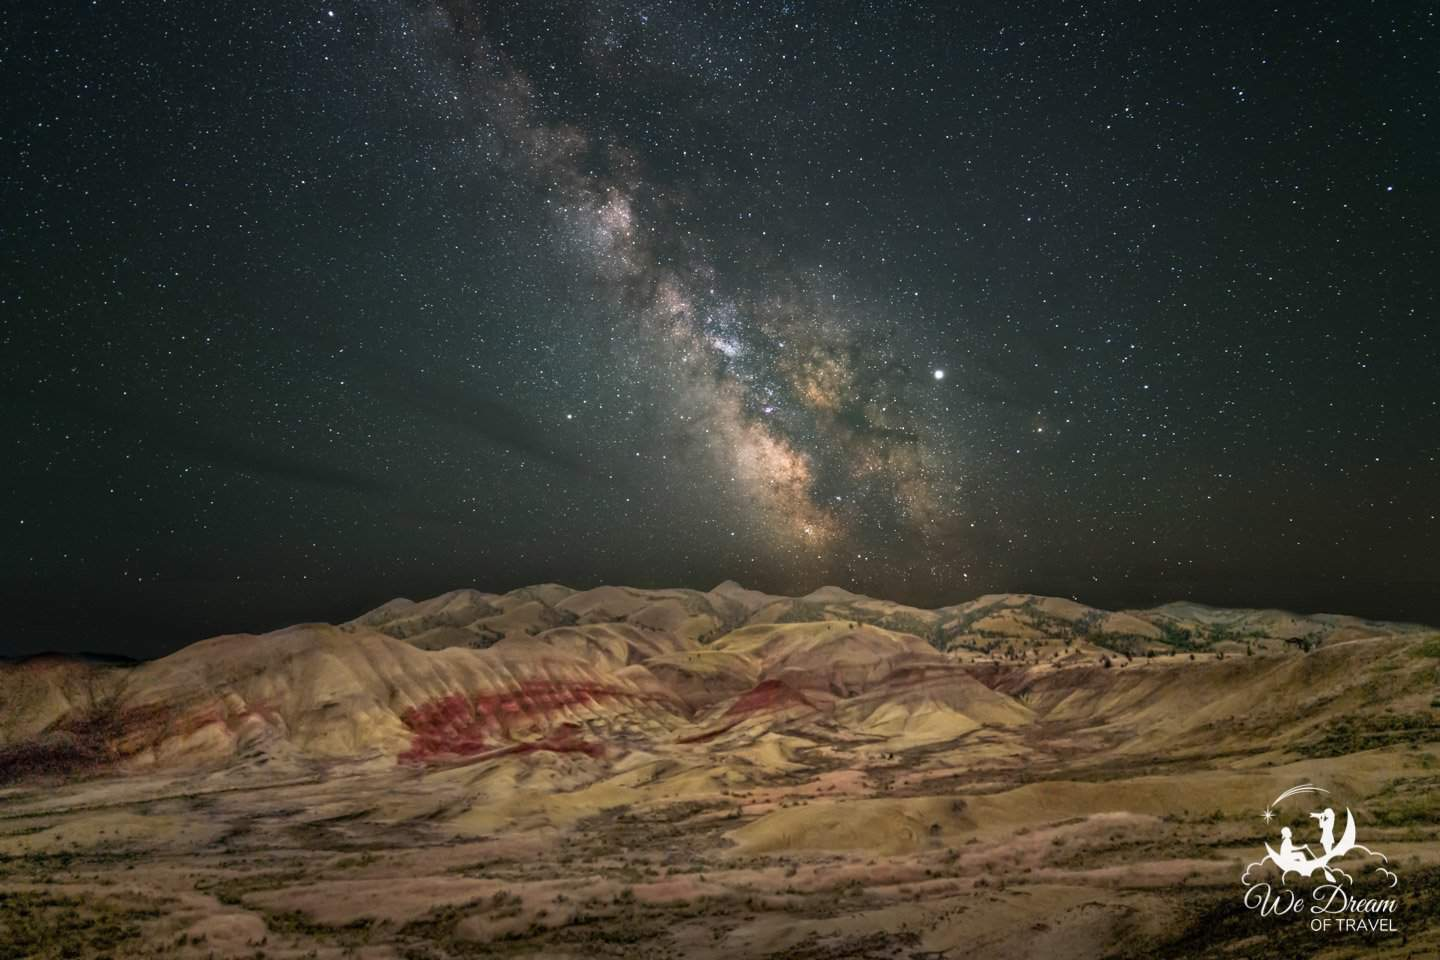 Milky Way photography from the John Day Painted Hills of Oregon